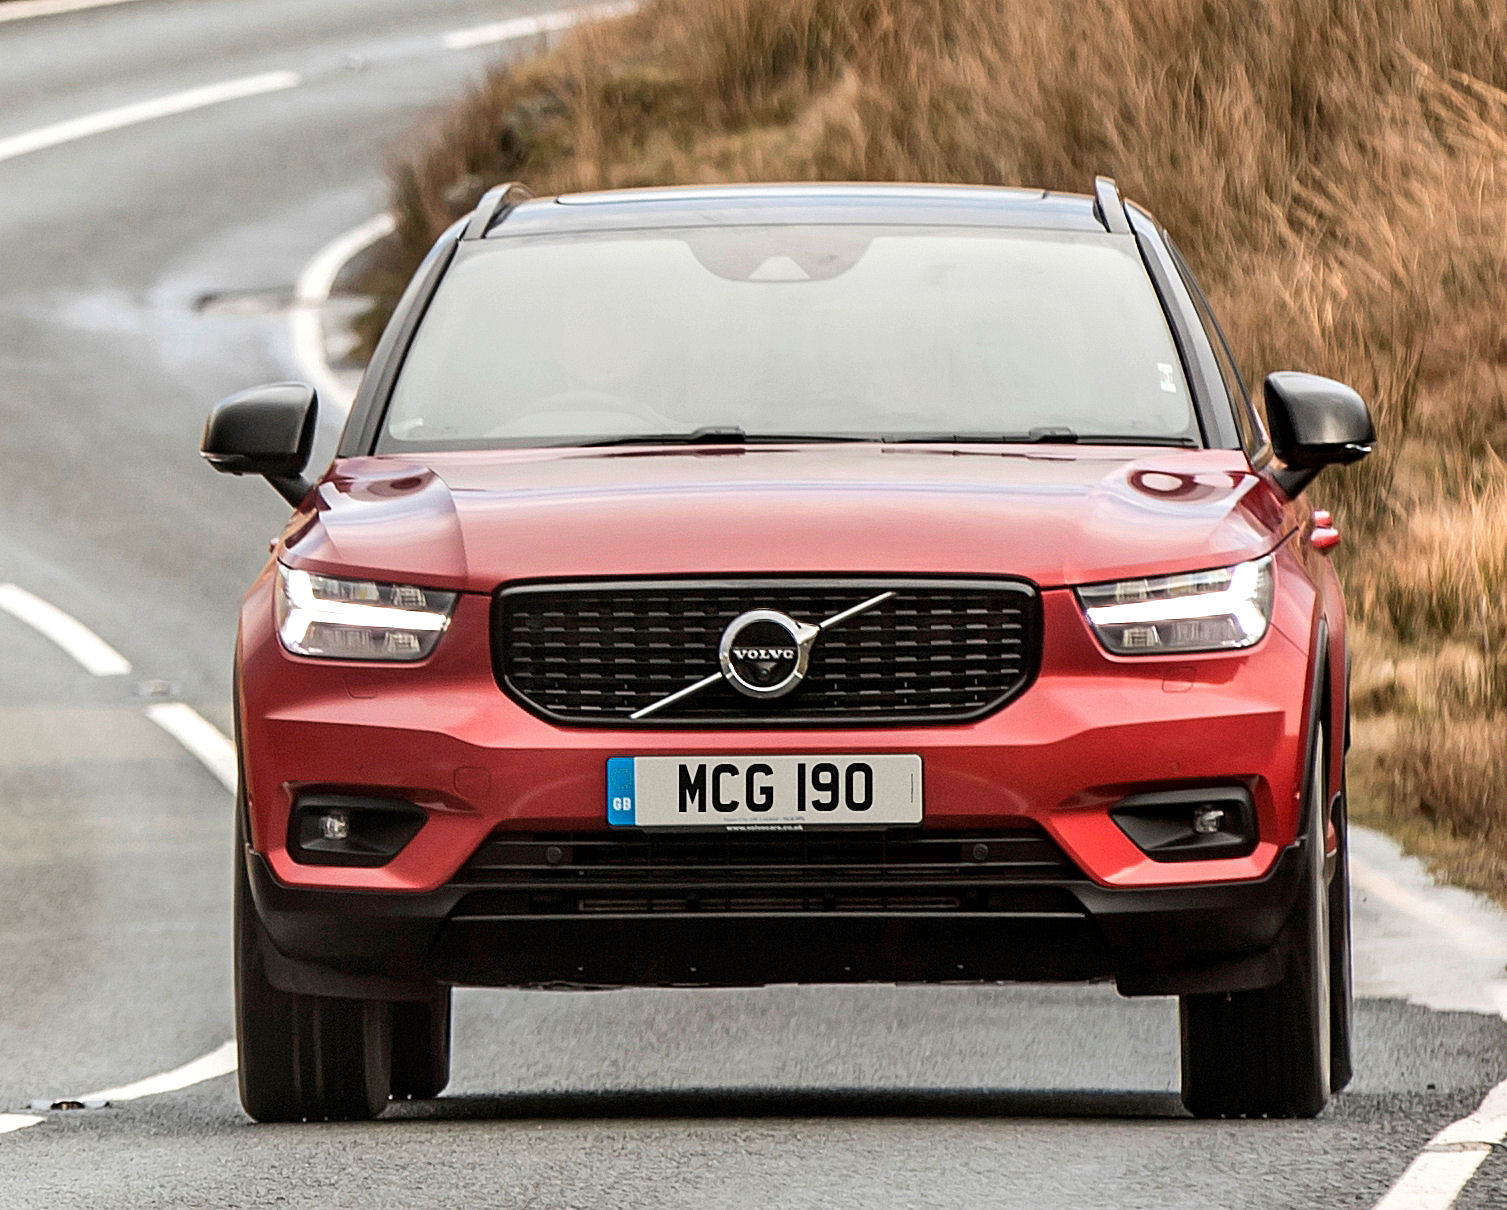 weekend roadtest volvo xc40 d4awd first edition wheels within wales. Black Bedroom Furniture Sets. Home Design Ideas